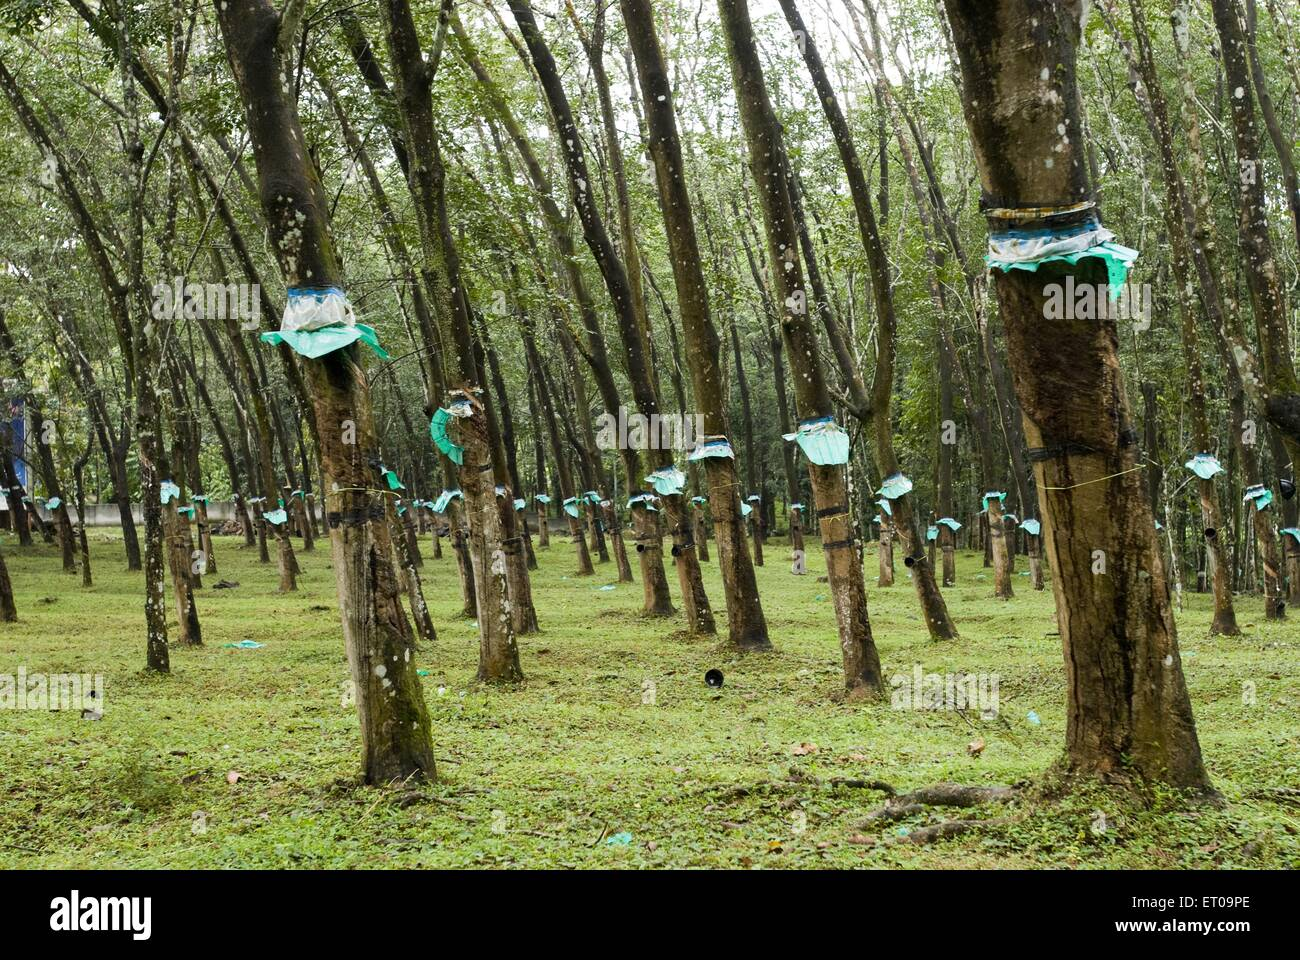 rubber cultivation in kerala